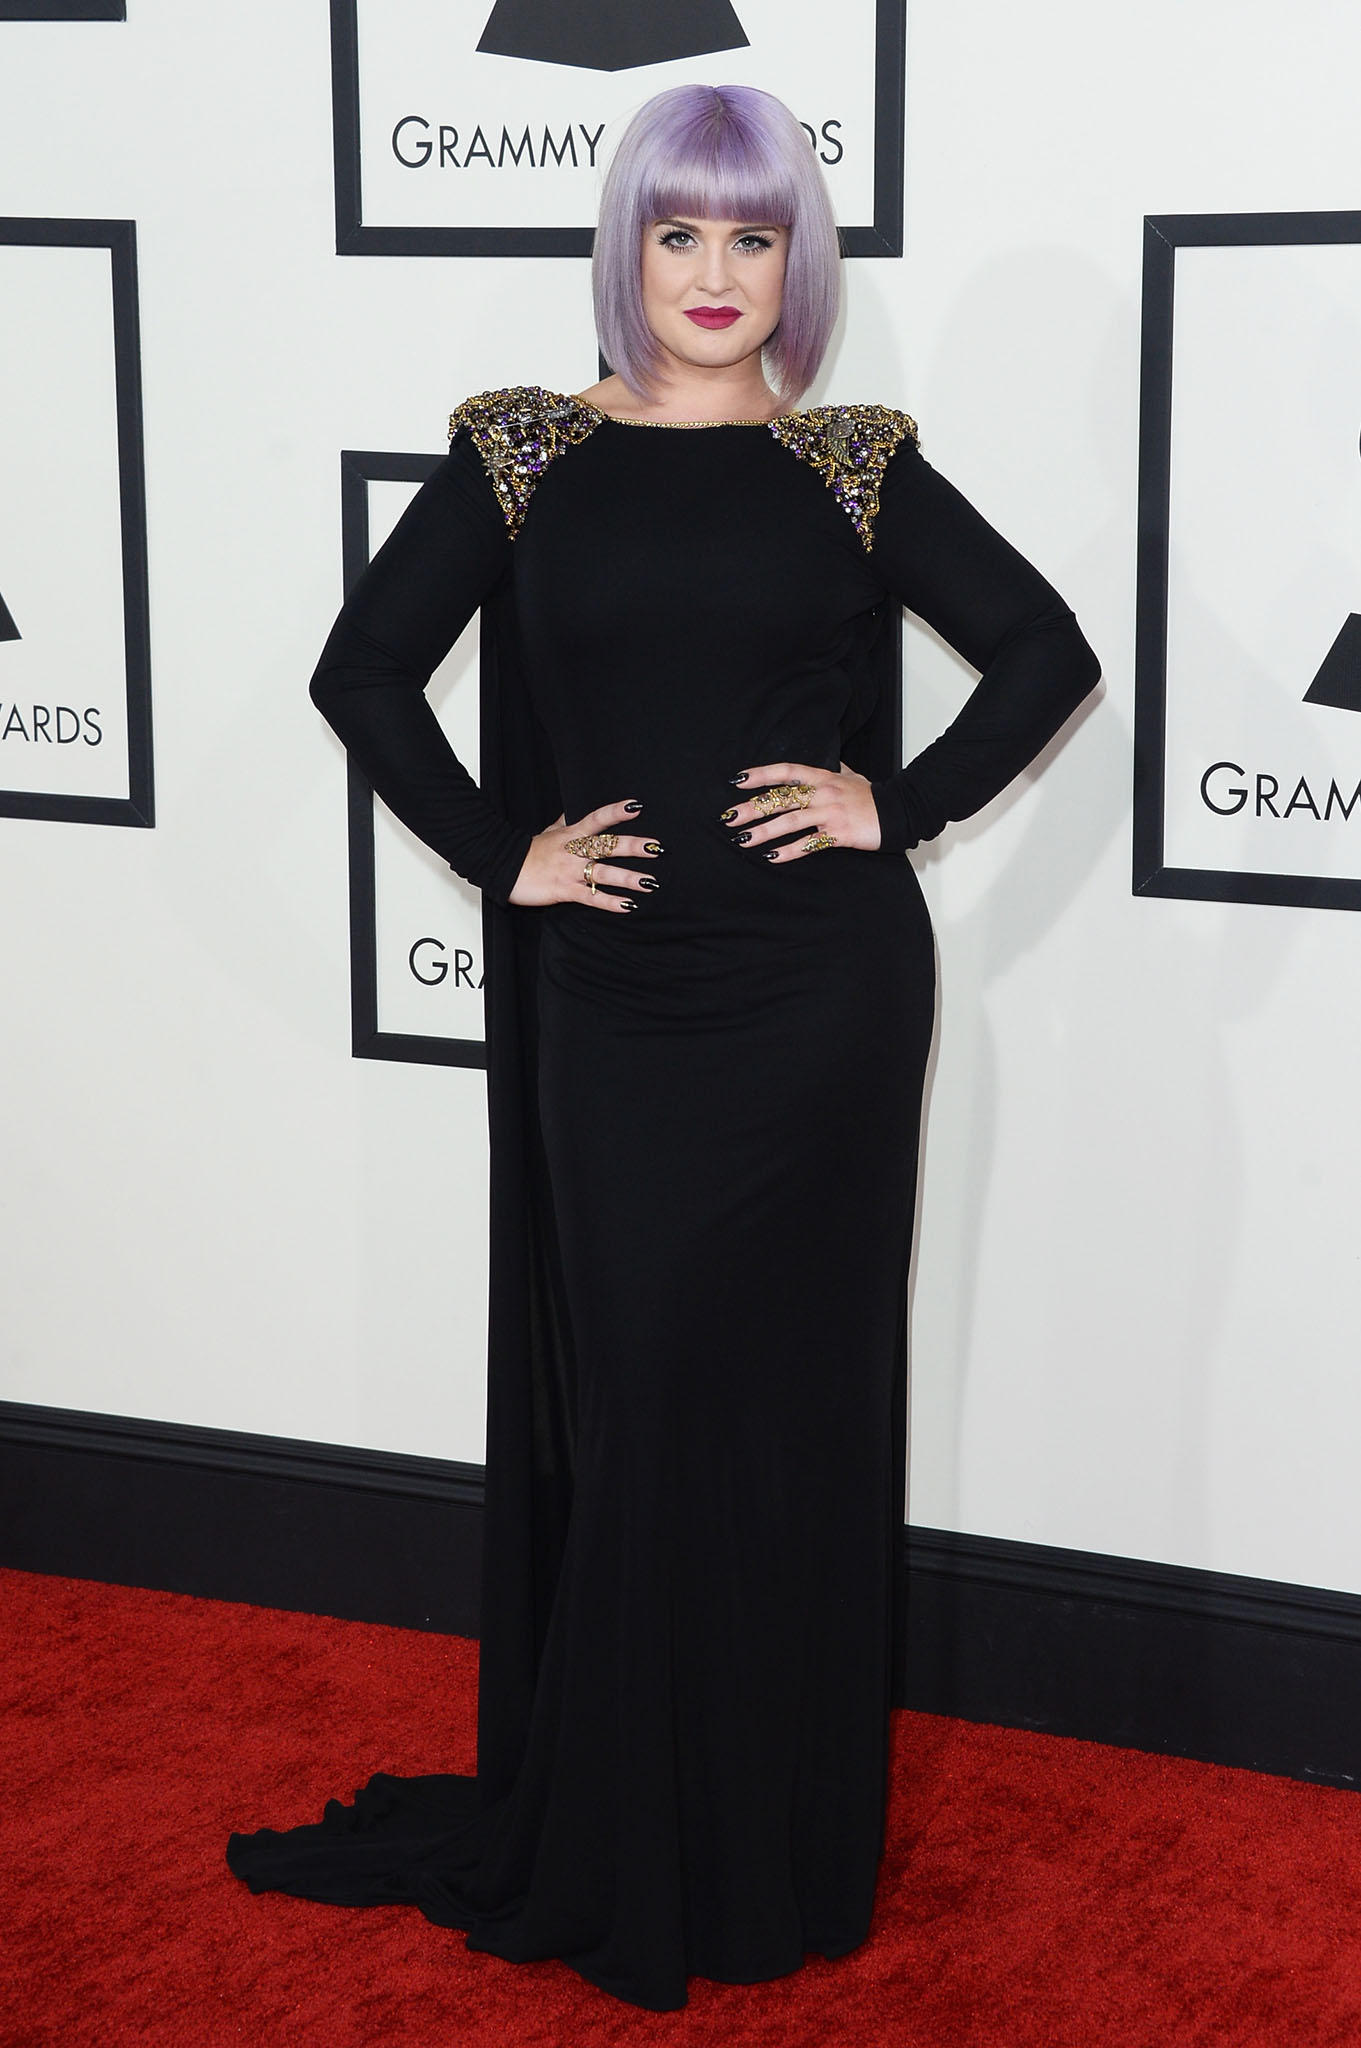 Not everyone loves Kelly Osbourne's style, but I think she always looks gorgeous.